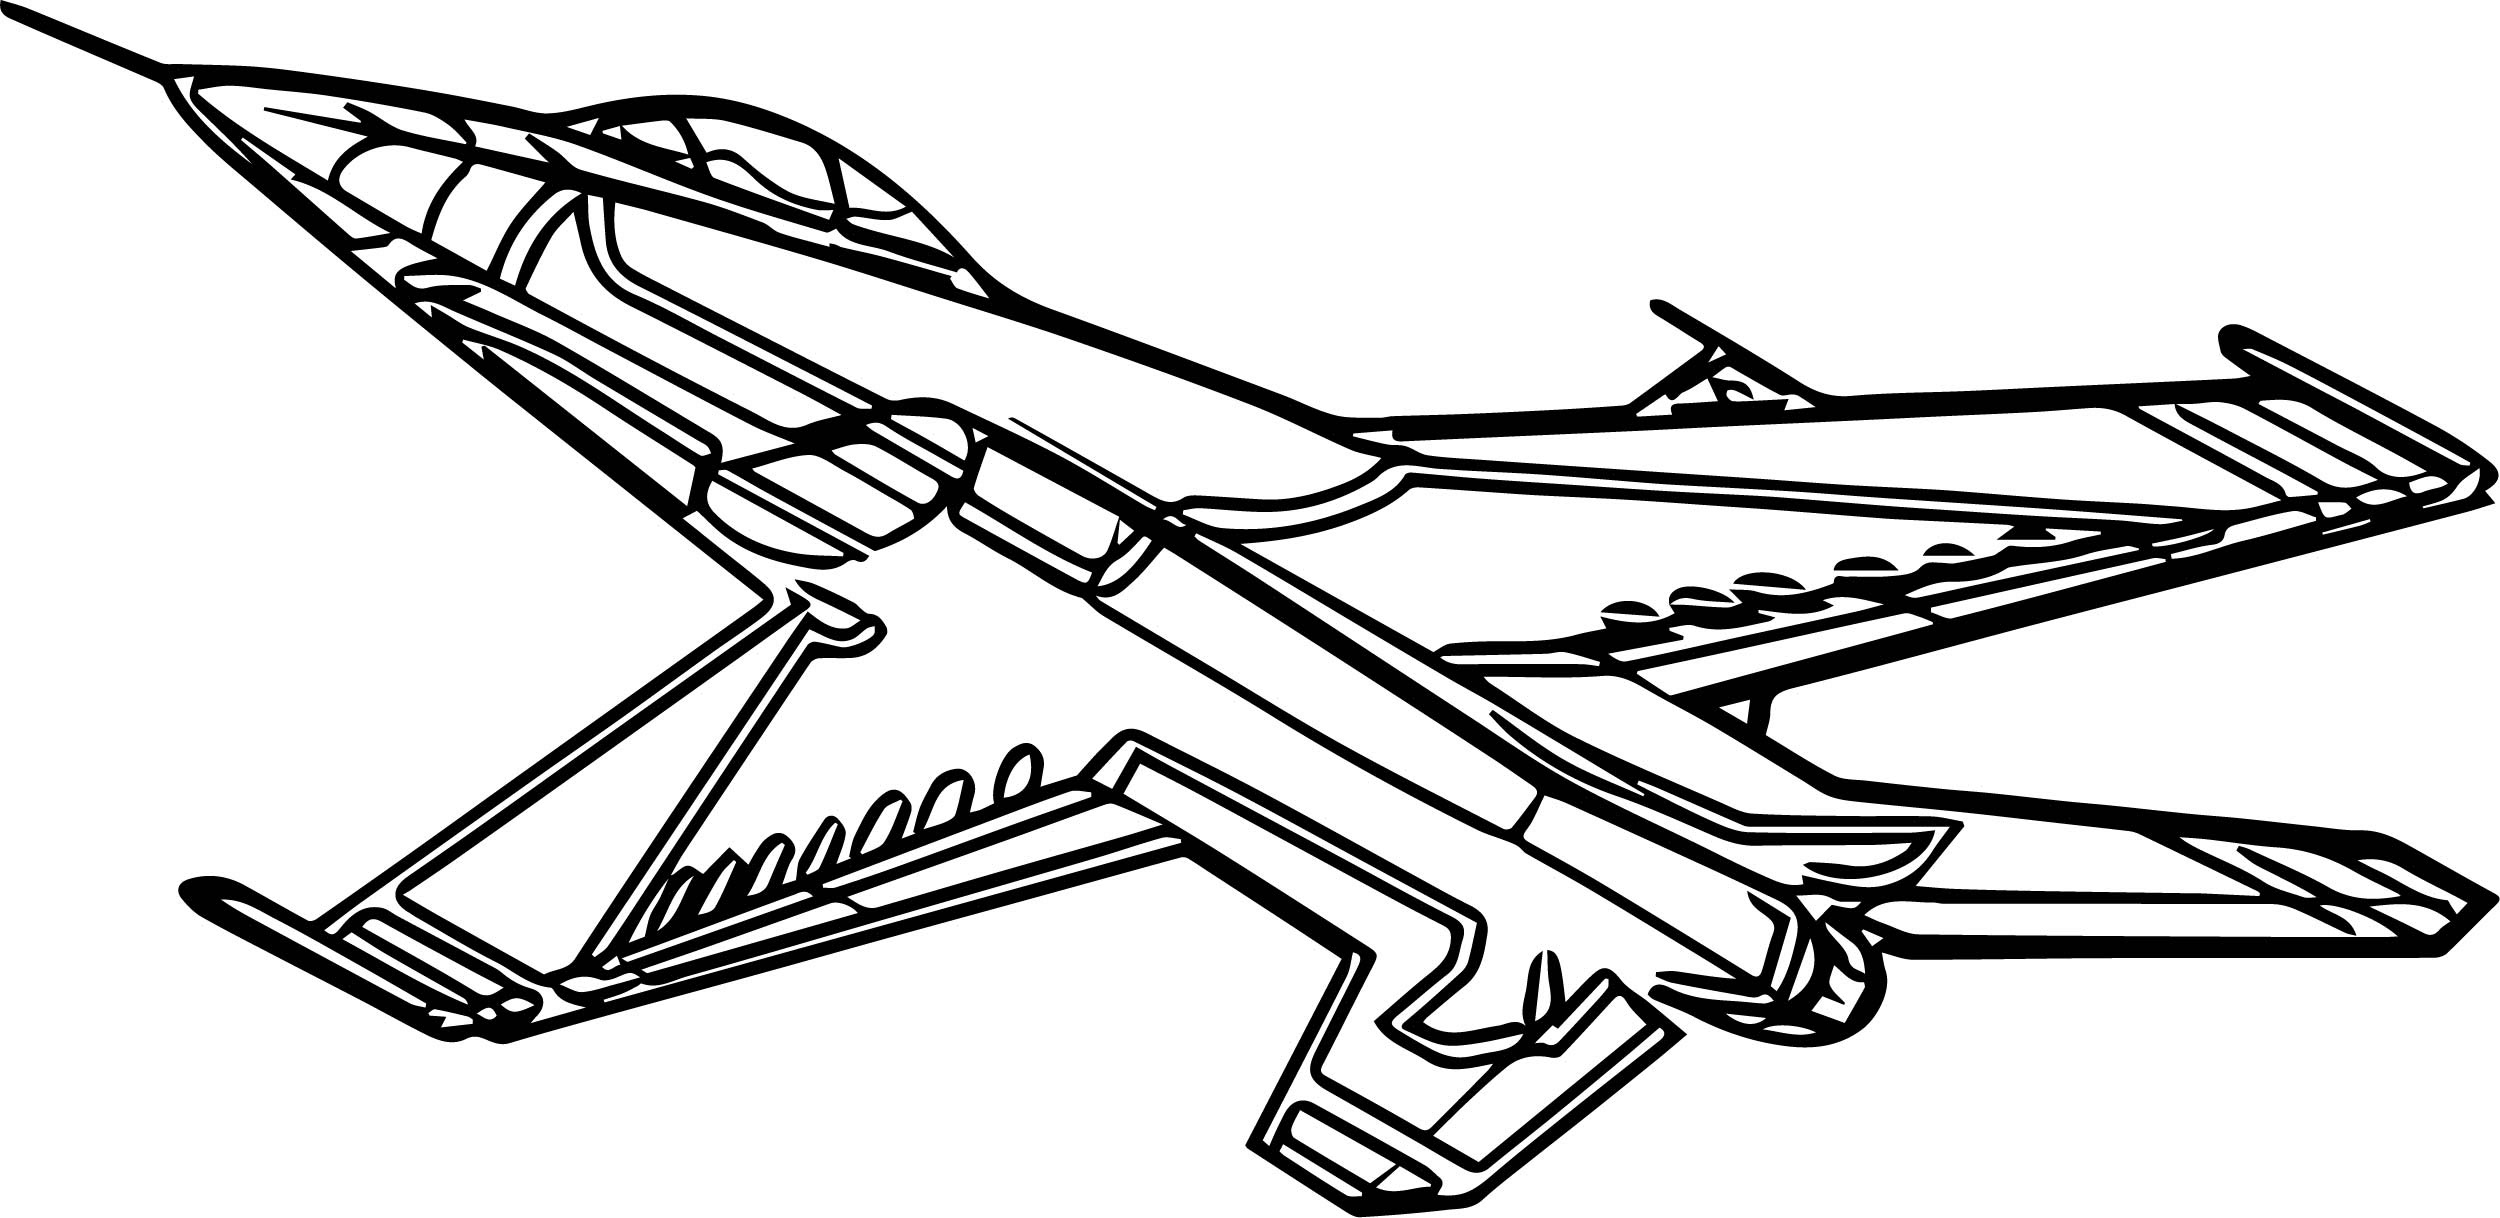 - F16 Airplane Coloring Page Wecoloringpage.com - Coloring Pages